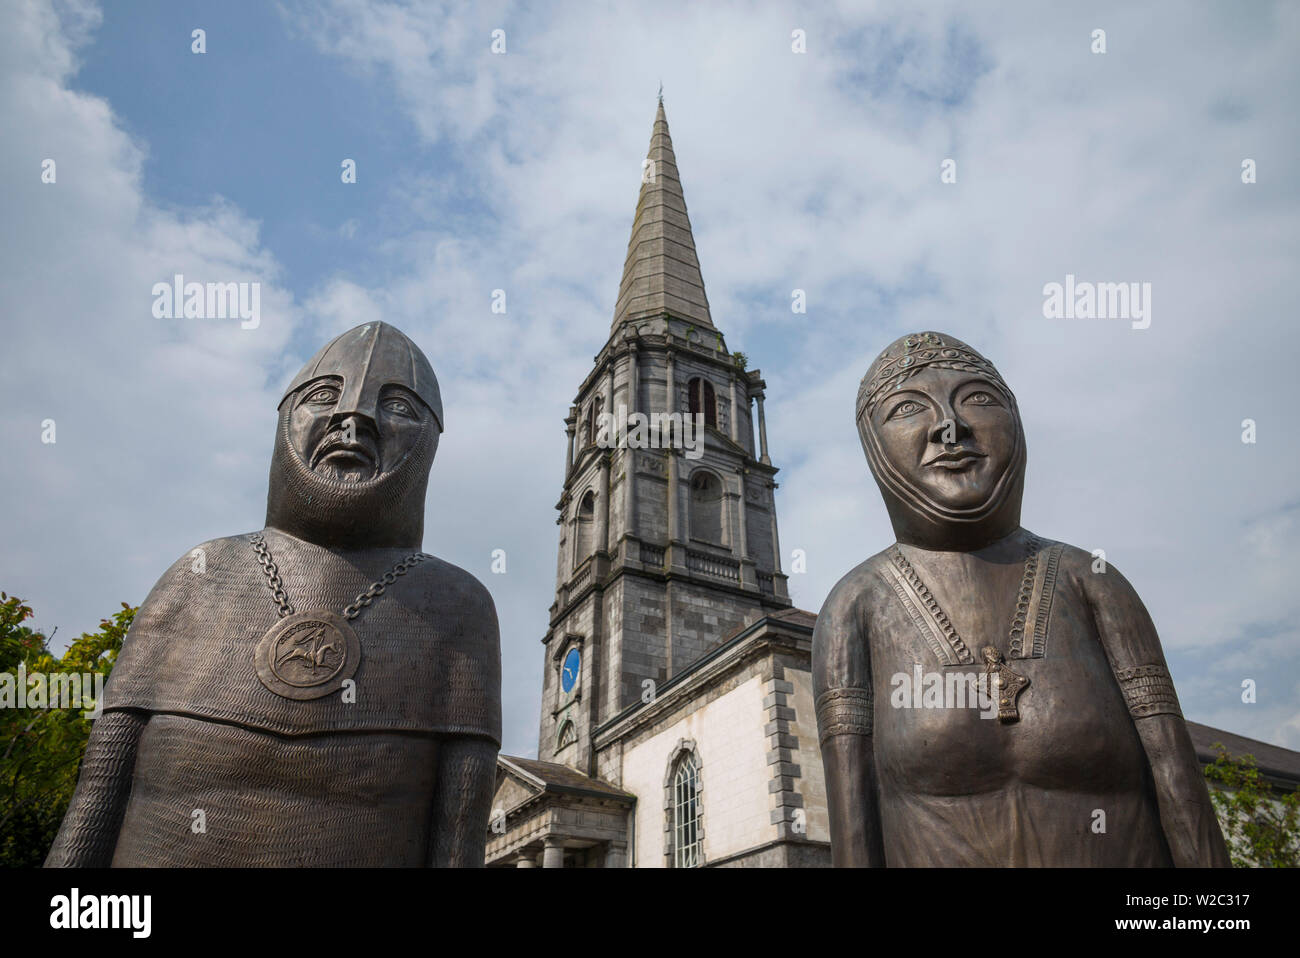 Ireland, County Waterford, Waterford City, statues of Lord Strongbow and wife Aiofe, Norman Invader and leader of Ireland, 12th century, at Christ Church Cathedral Stock Photo